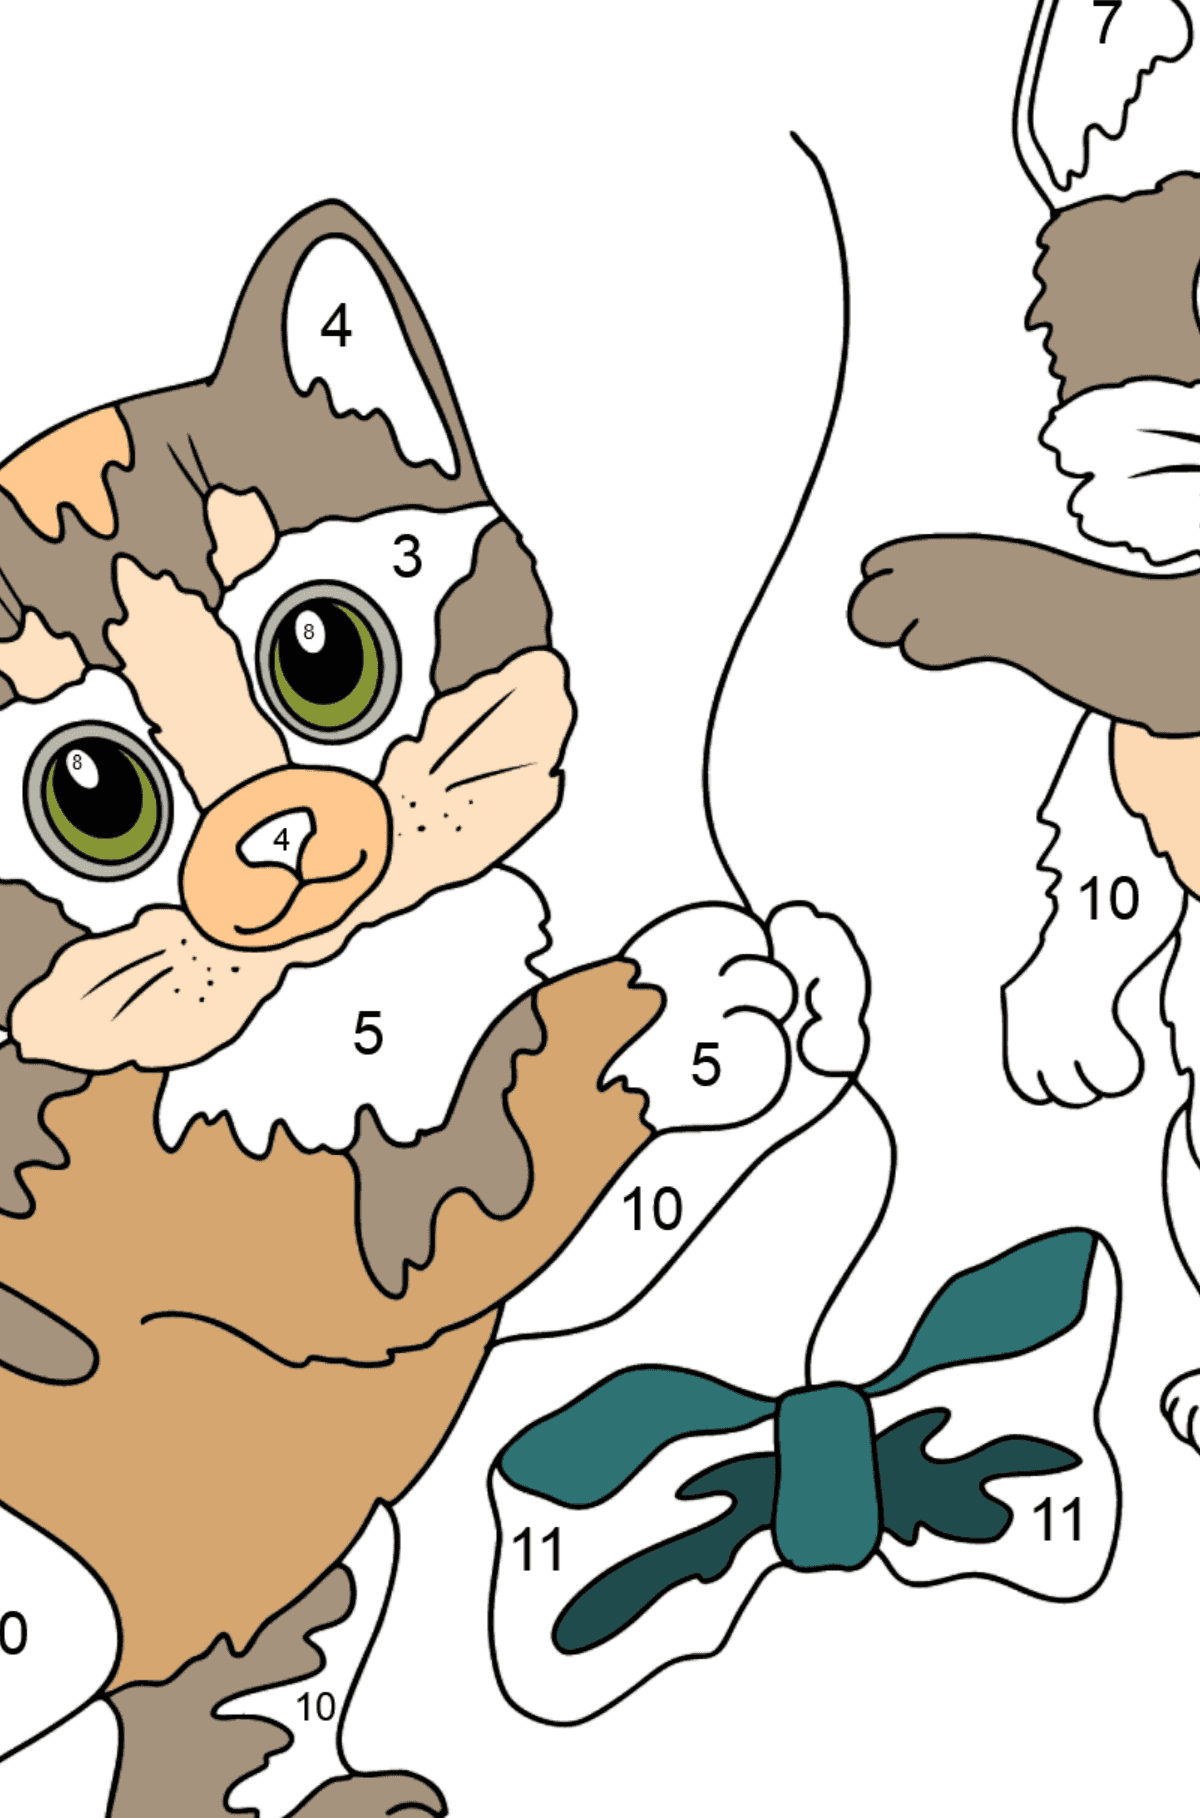 Coloring Page - Kittens are Jumping with Bows - Coloring by Numbers for Kids